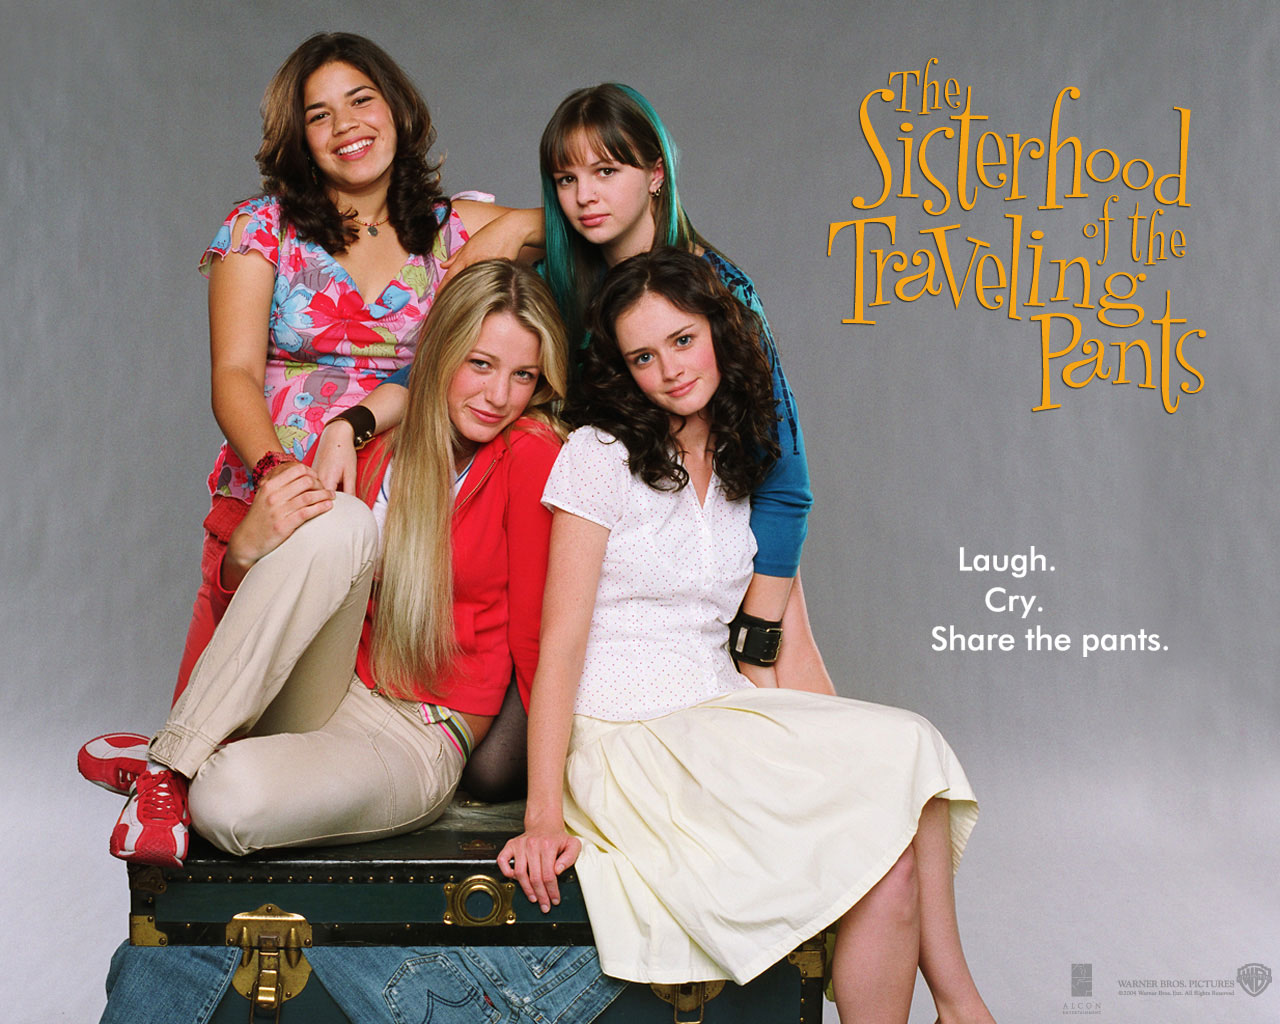 sisterhood of the traveling pants Find great deals on ebay for sisterhood of the traveling pants and sisterhood of the traveling pants book shop with confidence.